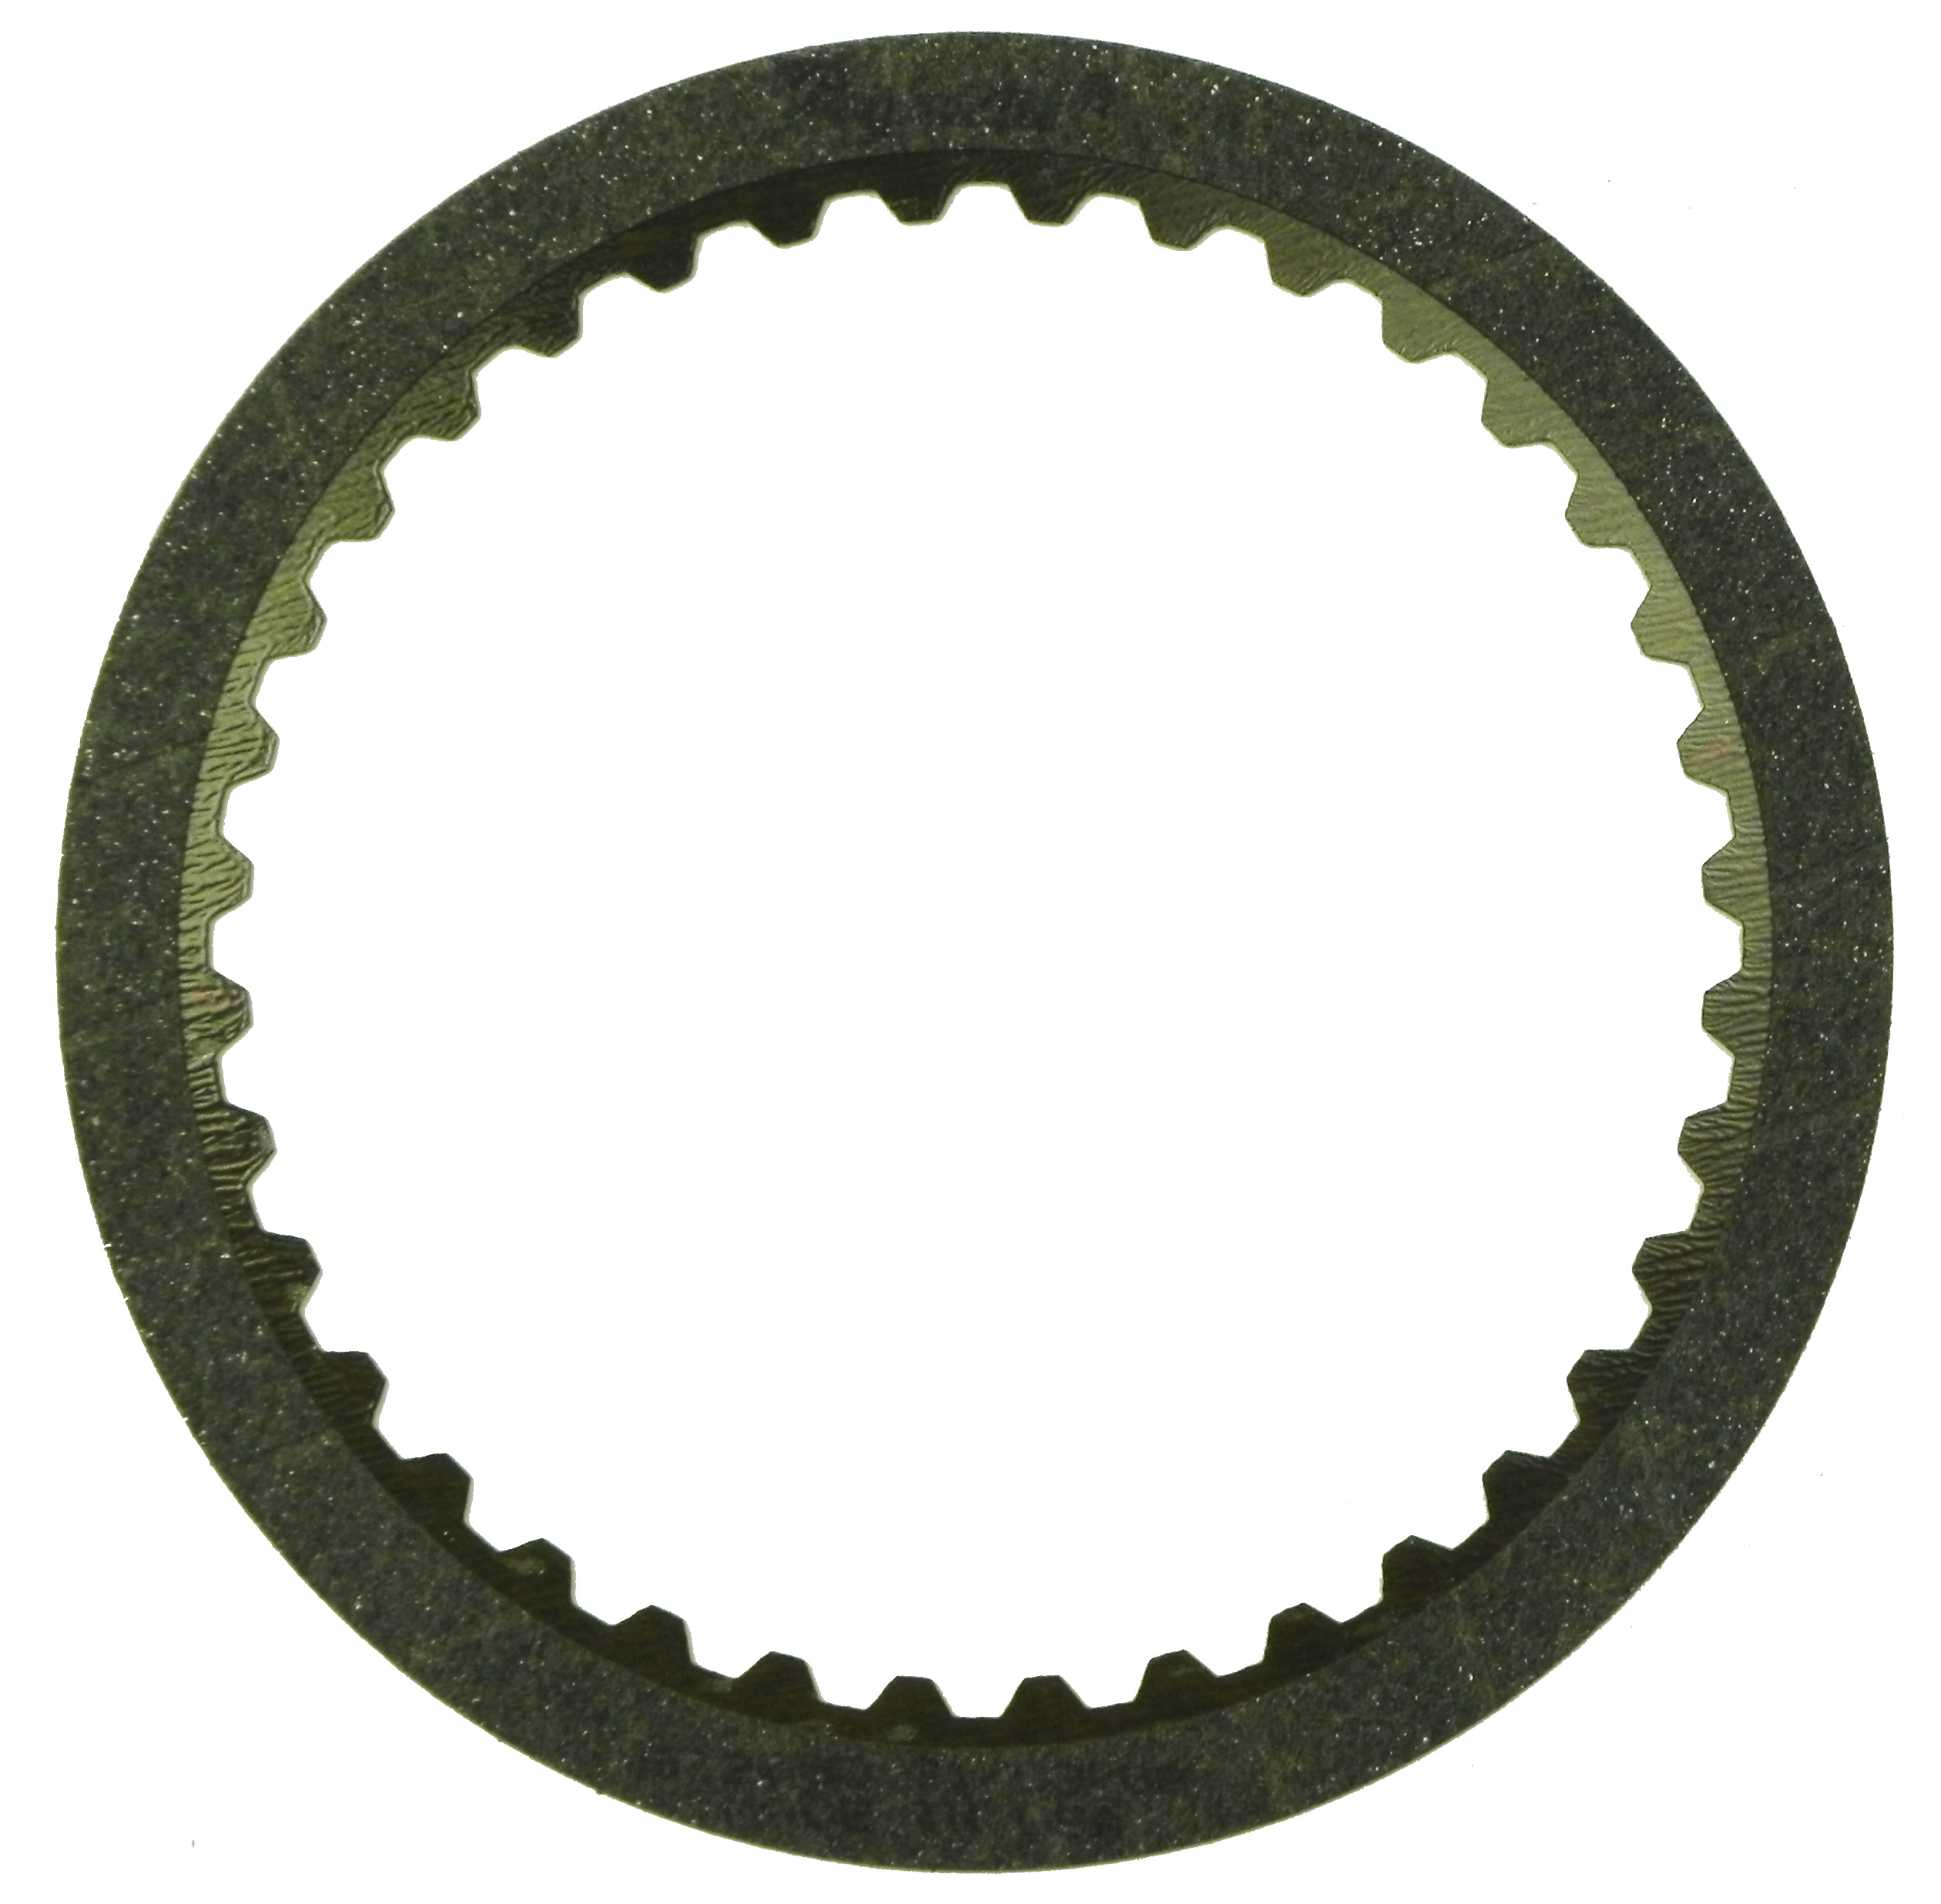 R572680 | 2004-ON Friction Clutch Plate High Energy C2 Direct High Energy